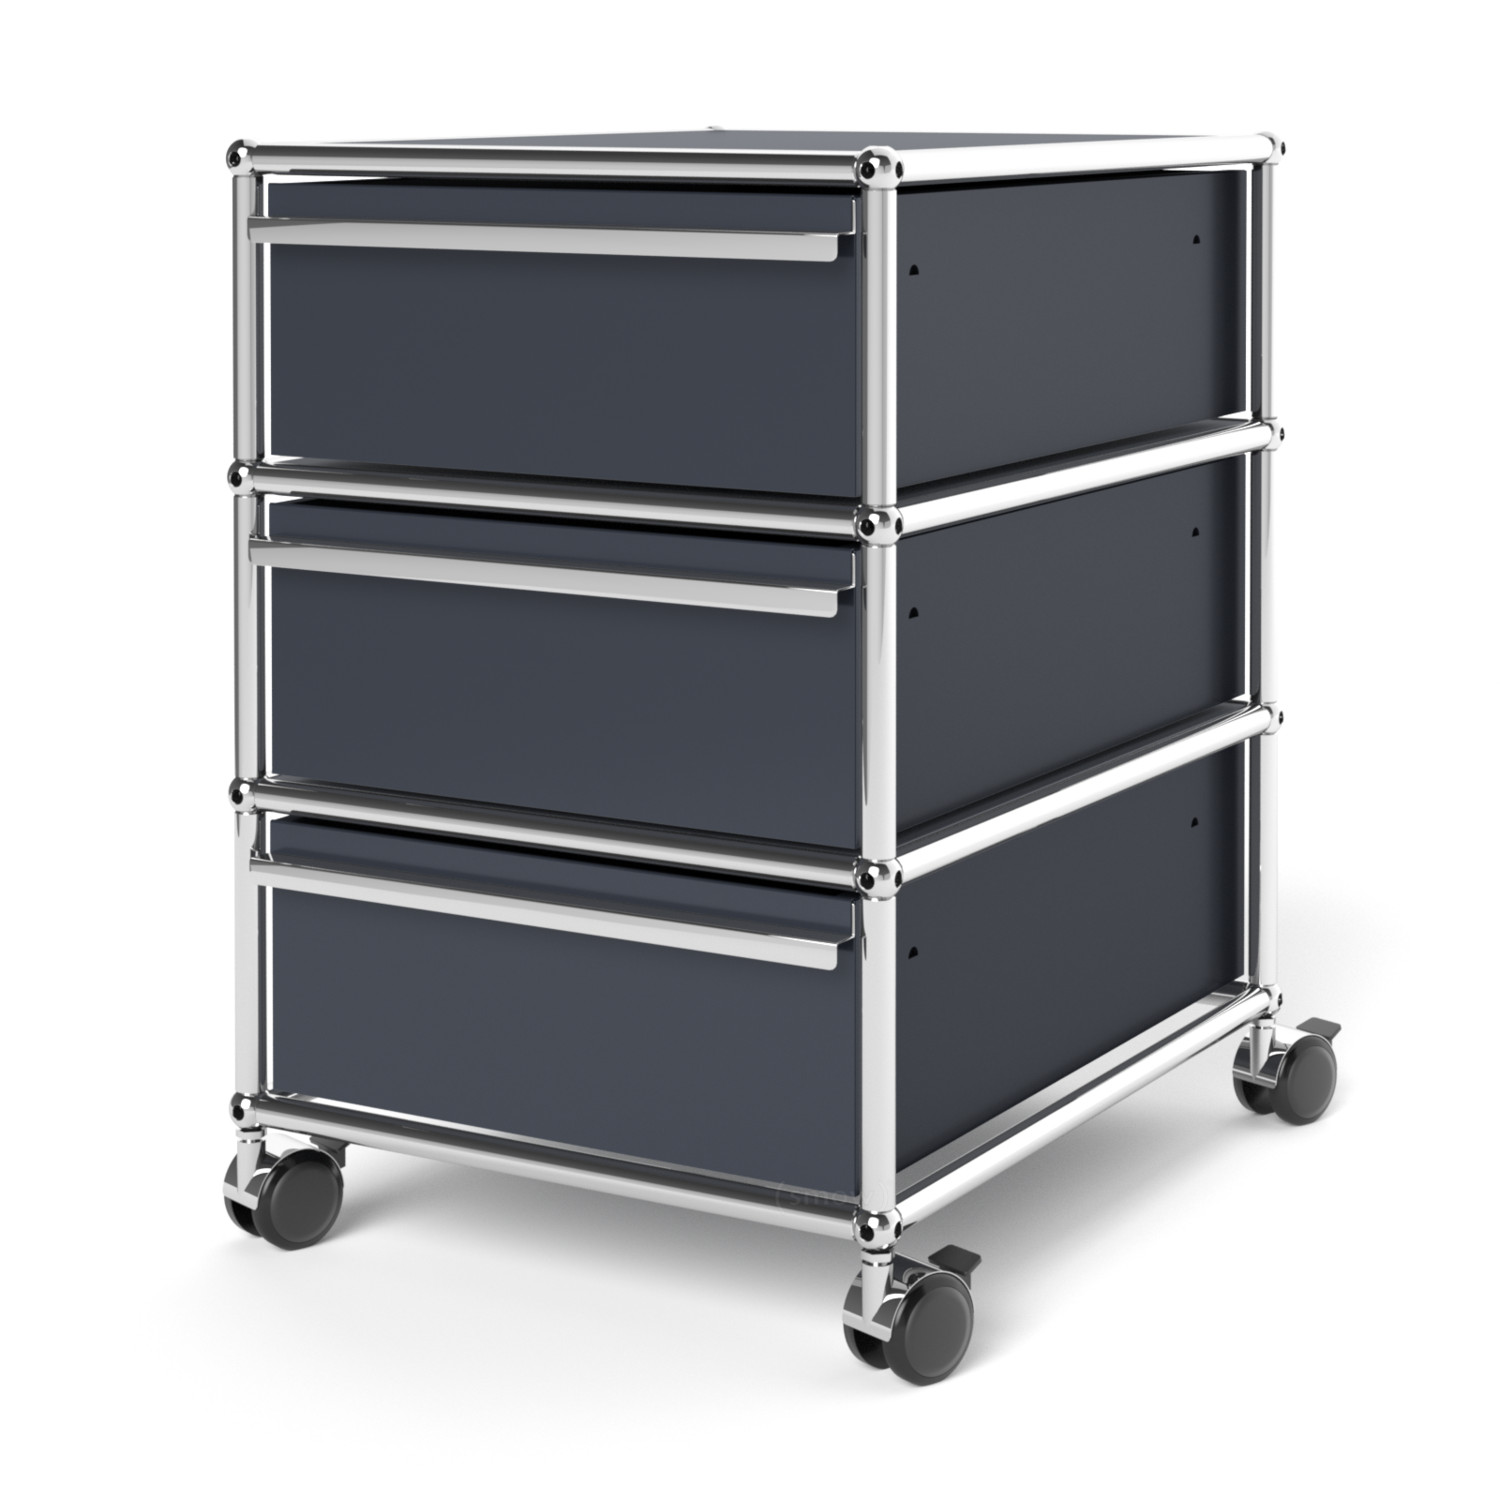 USM Haller Mobile Pedestal with 32 Drawers Type I (with